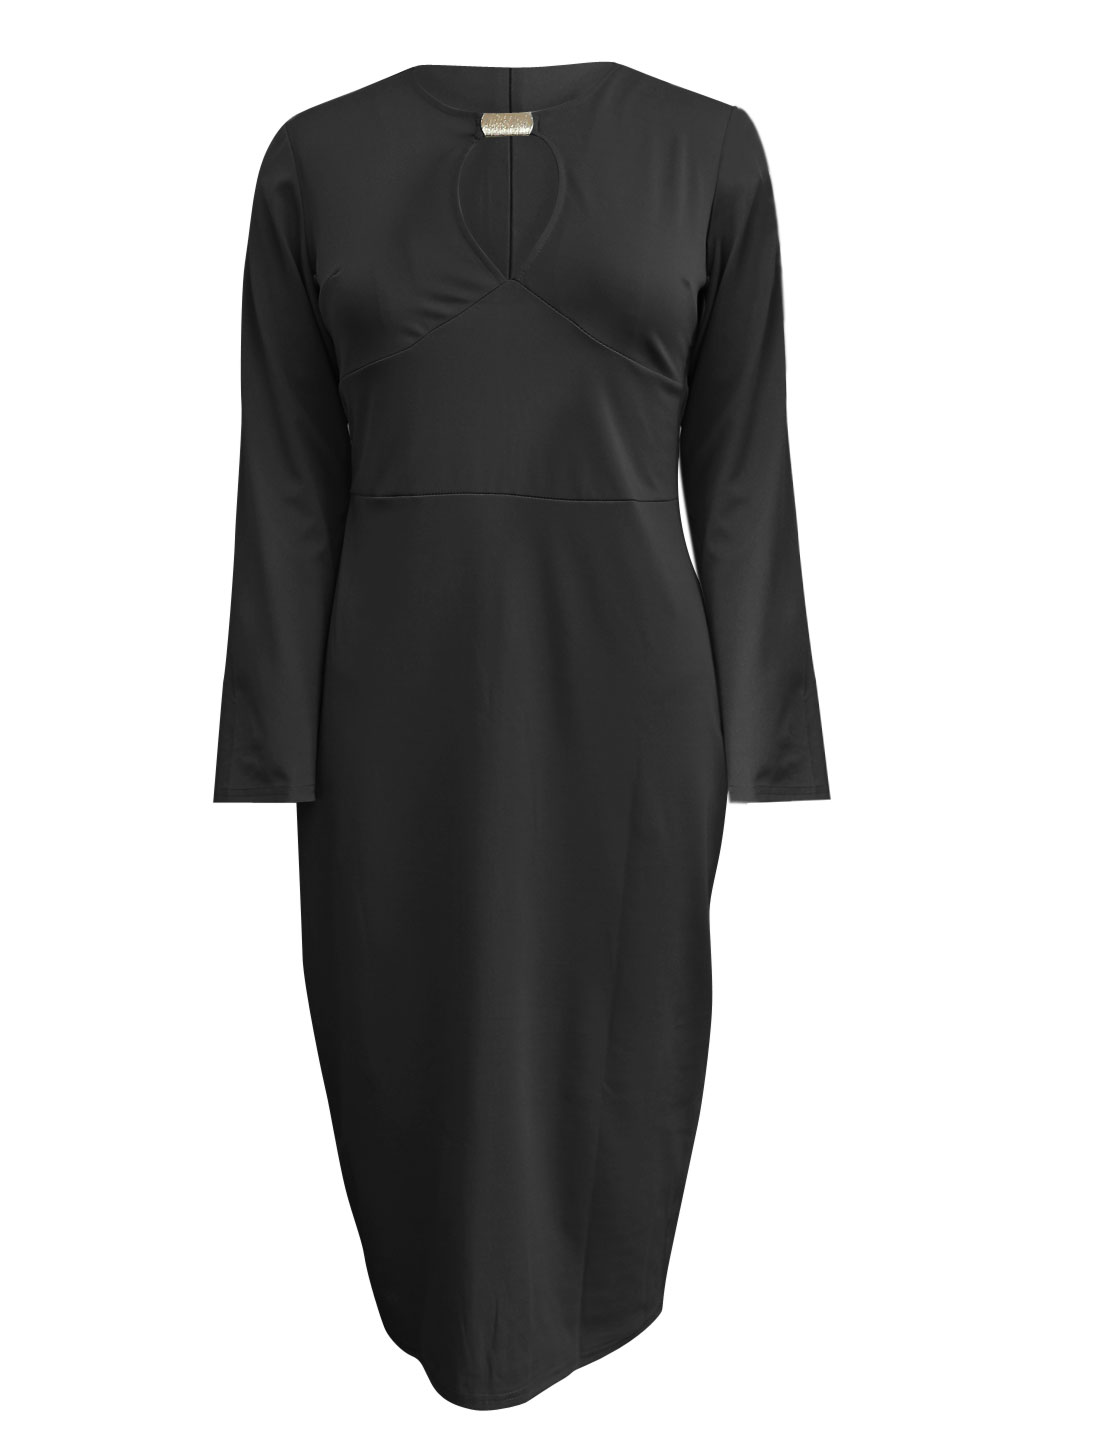 Women Round Neck Cut Out Front Long Sleeve Sheath Dress Black XL